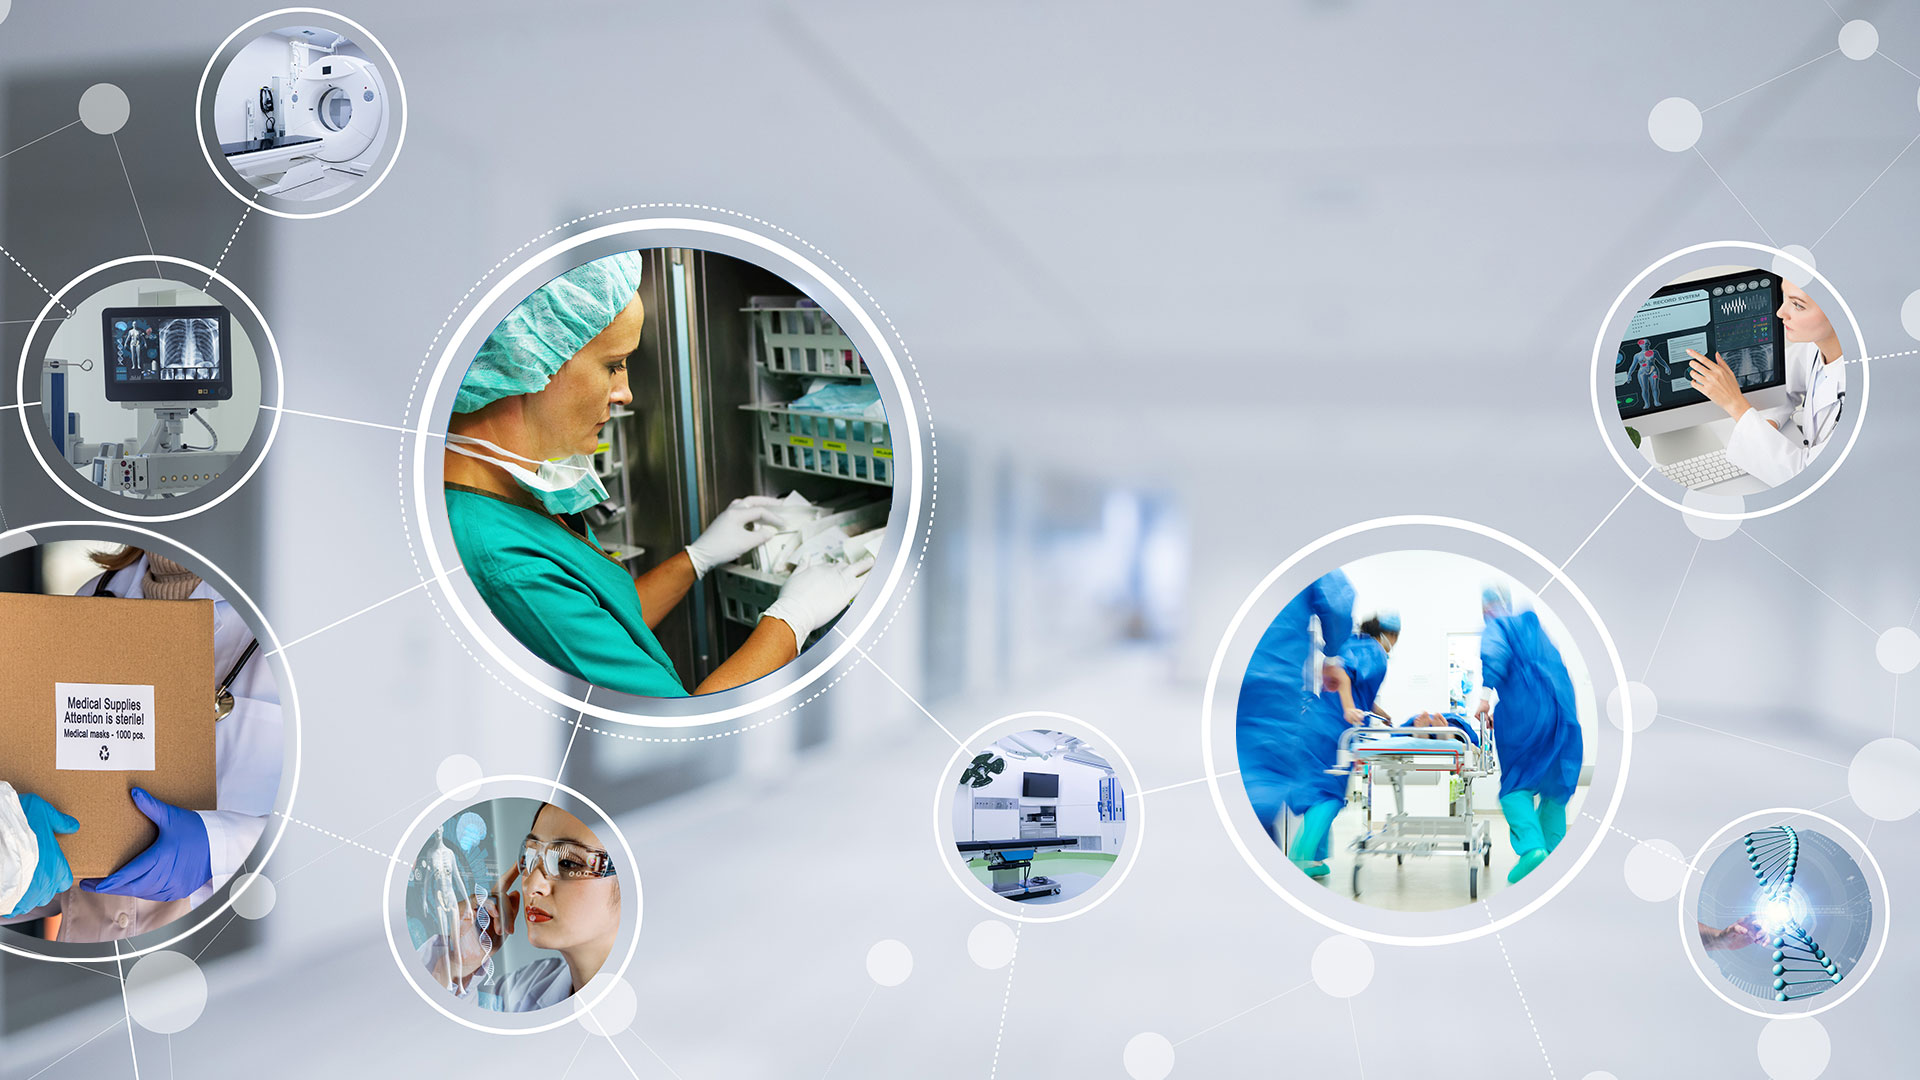 Resilient Healthcare and Hospital Supply Chain Networks